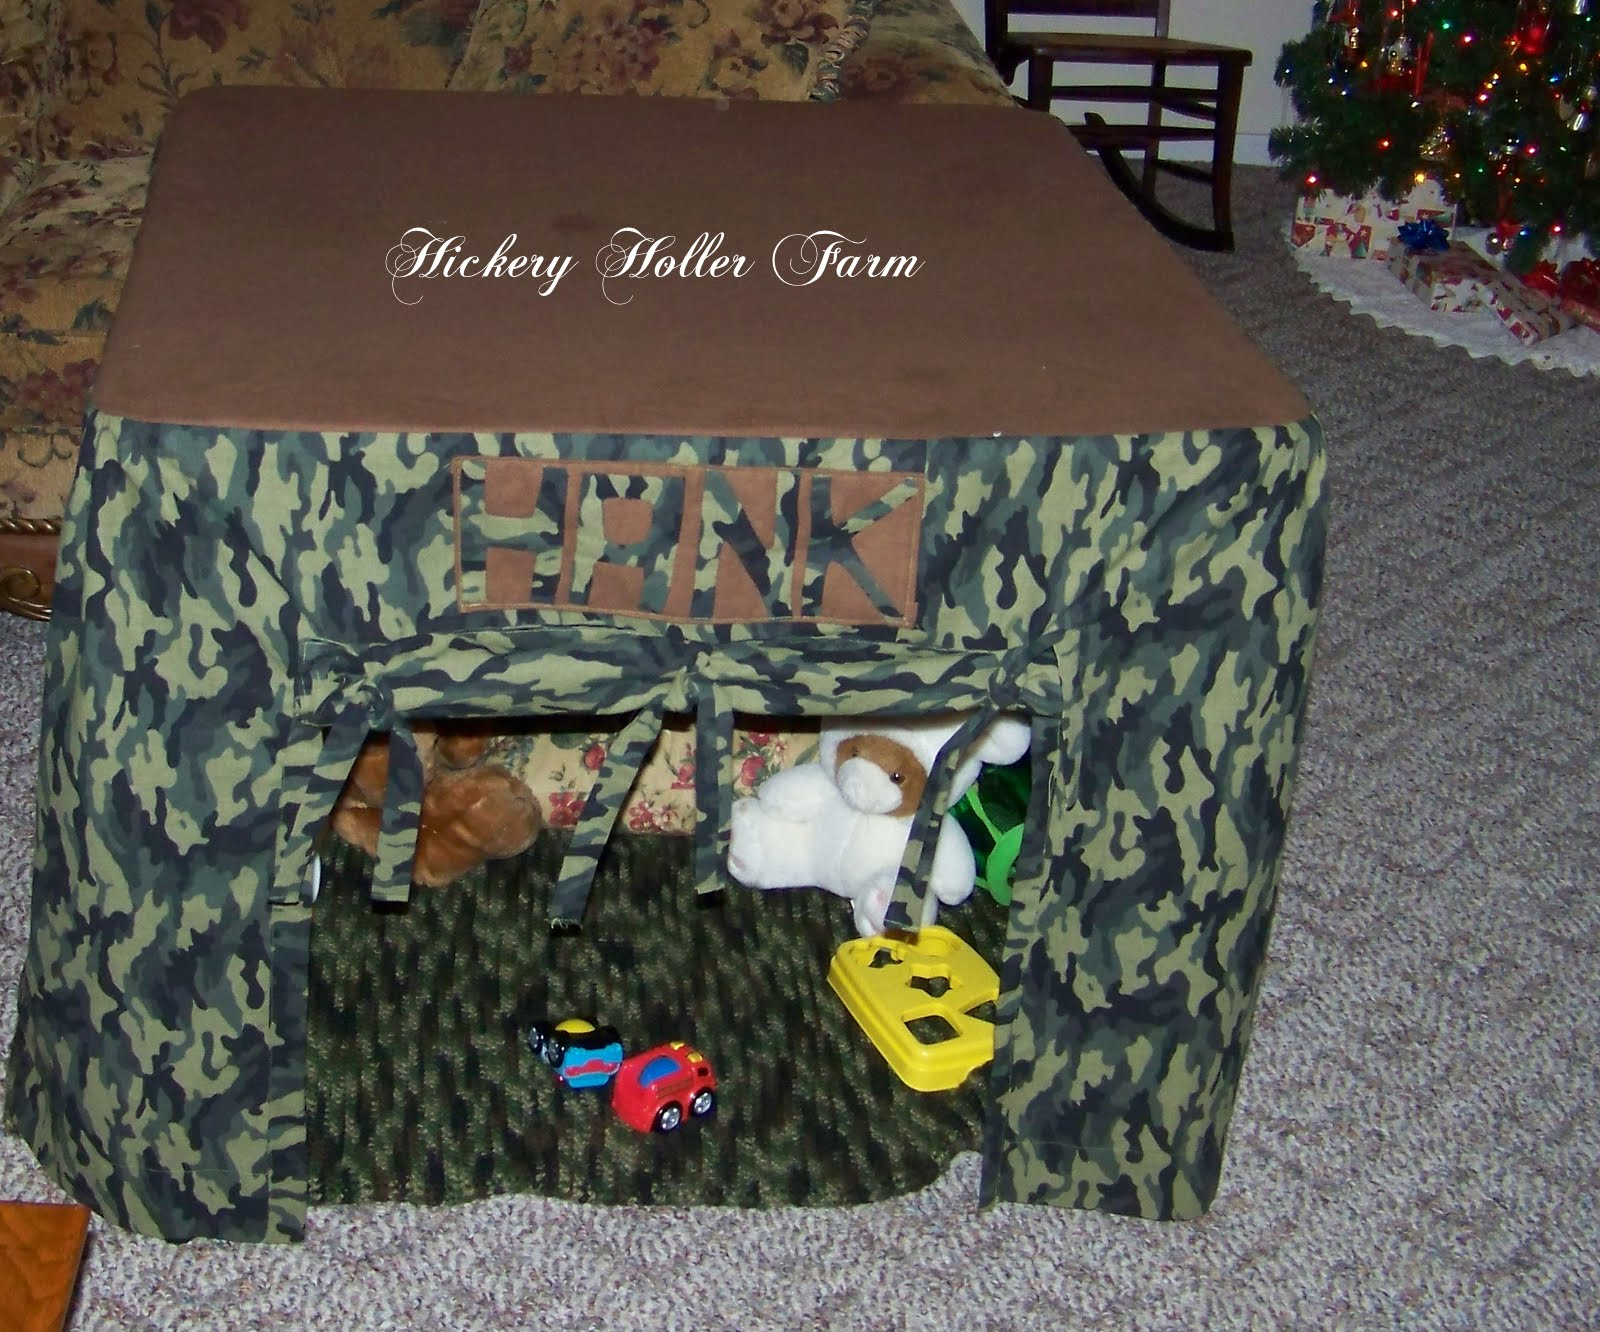 Shed Building Software Freeware: Truck Dog Box Plans Wooden Plans